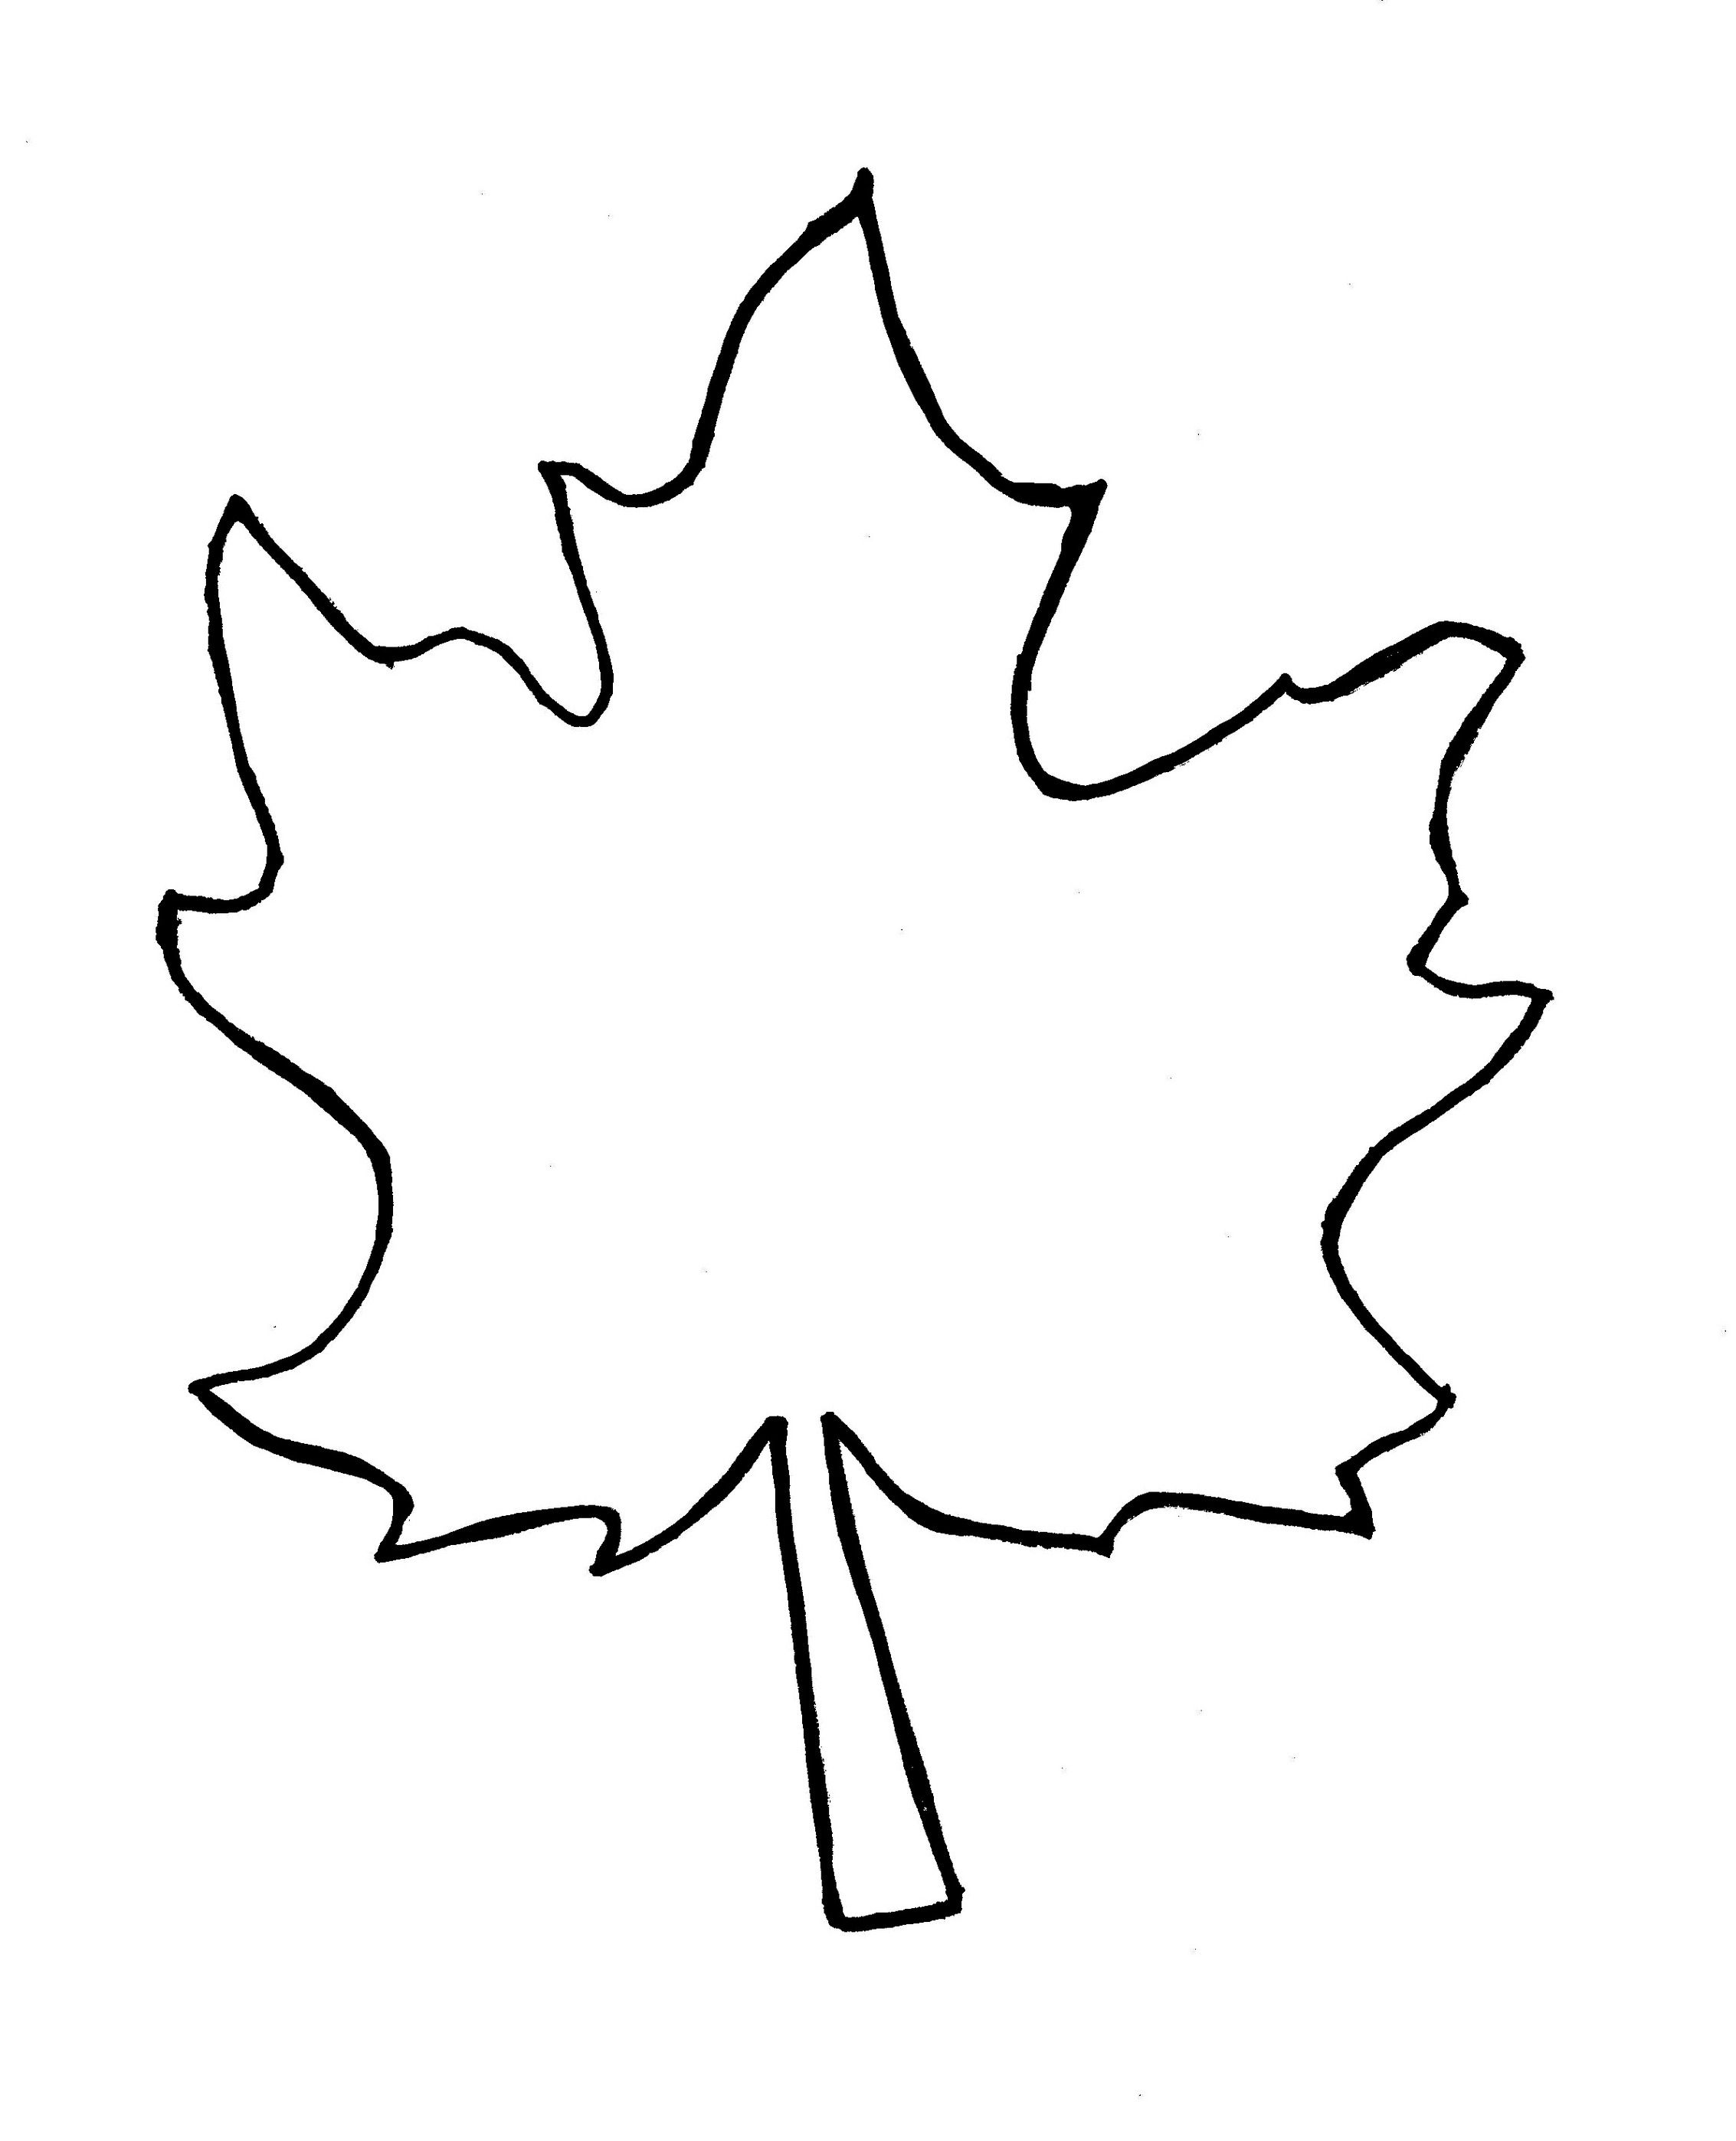 Autumn leaf outline template clipart free to use clip art resource 2.